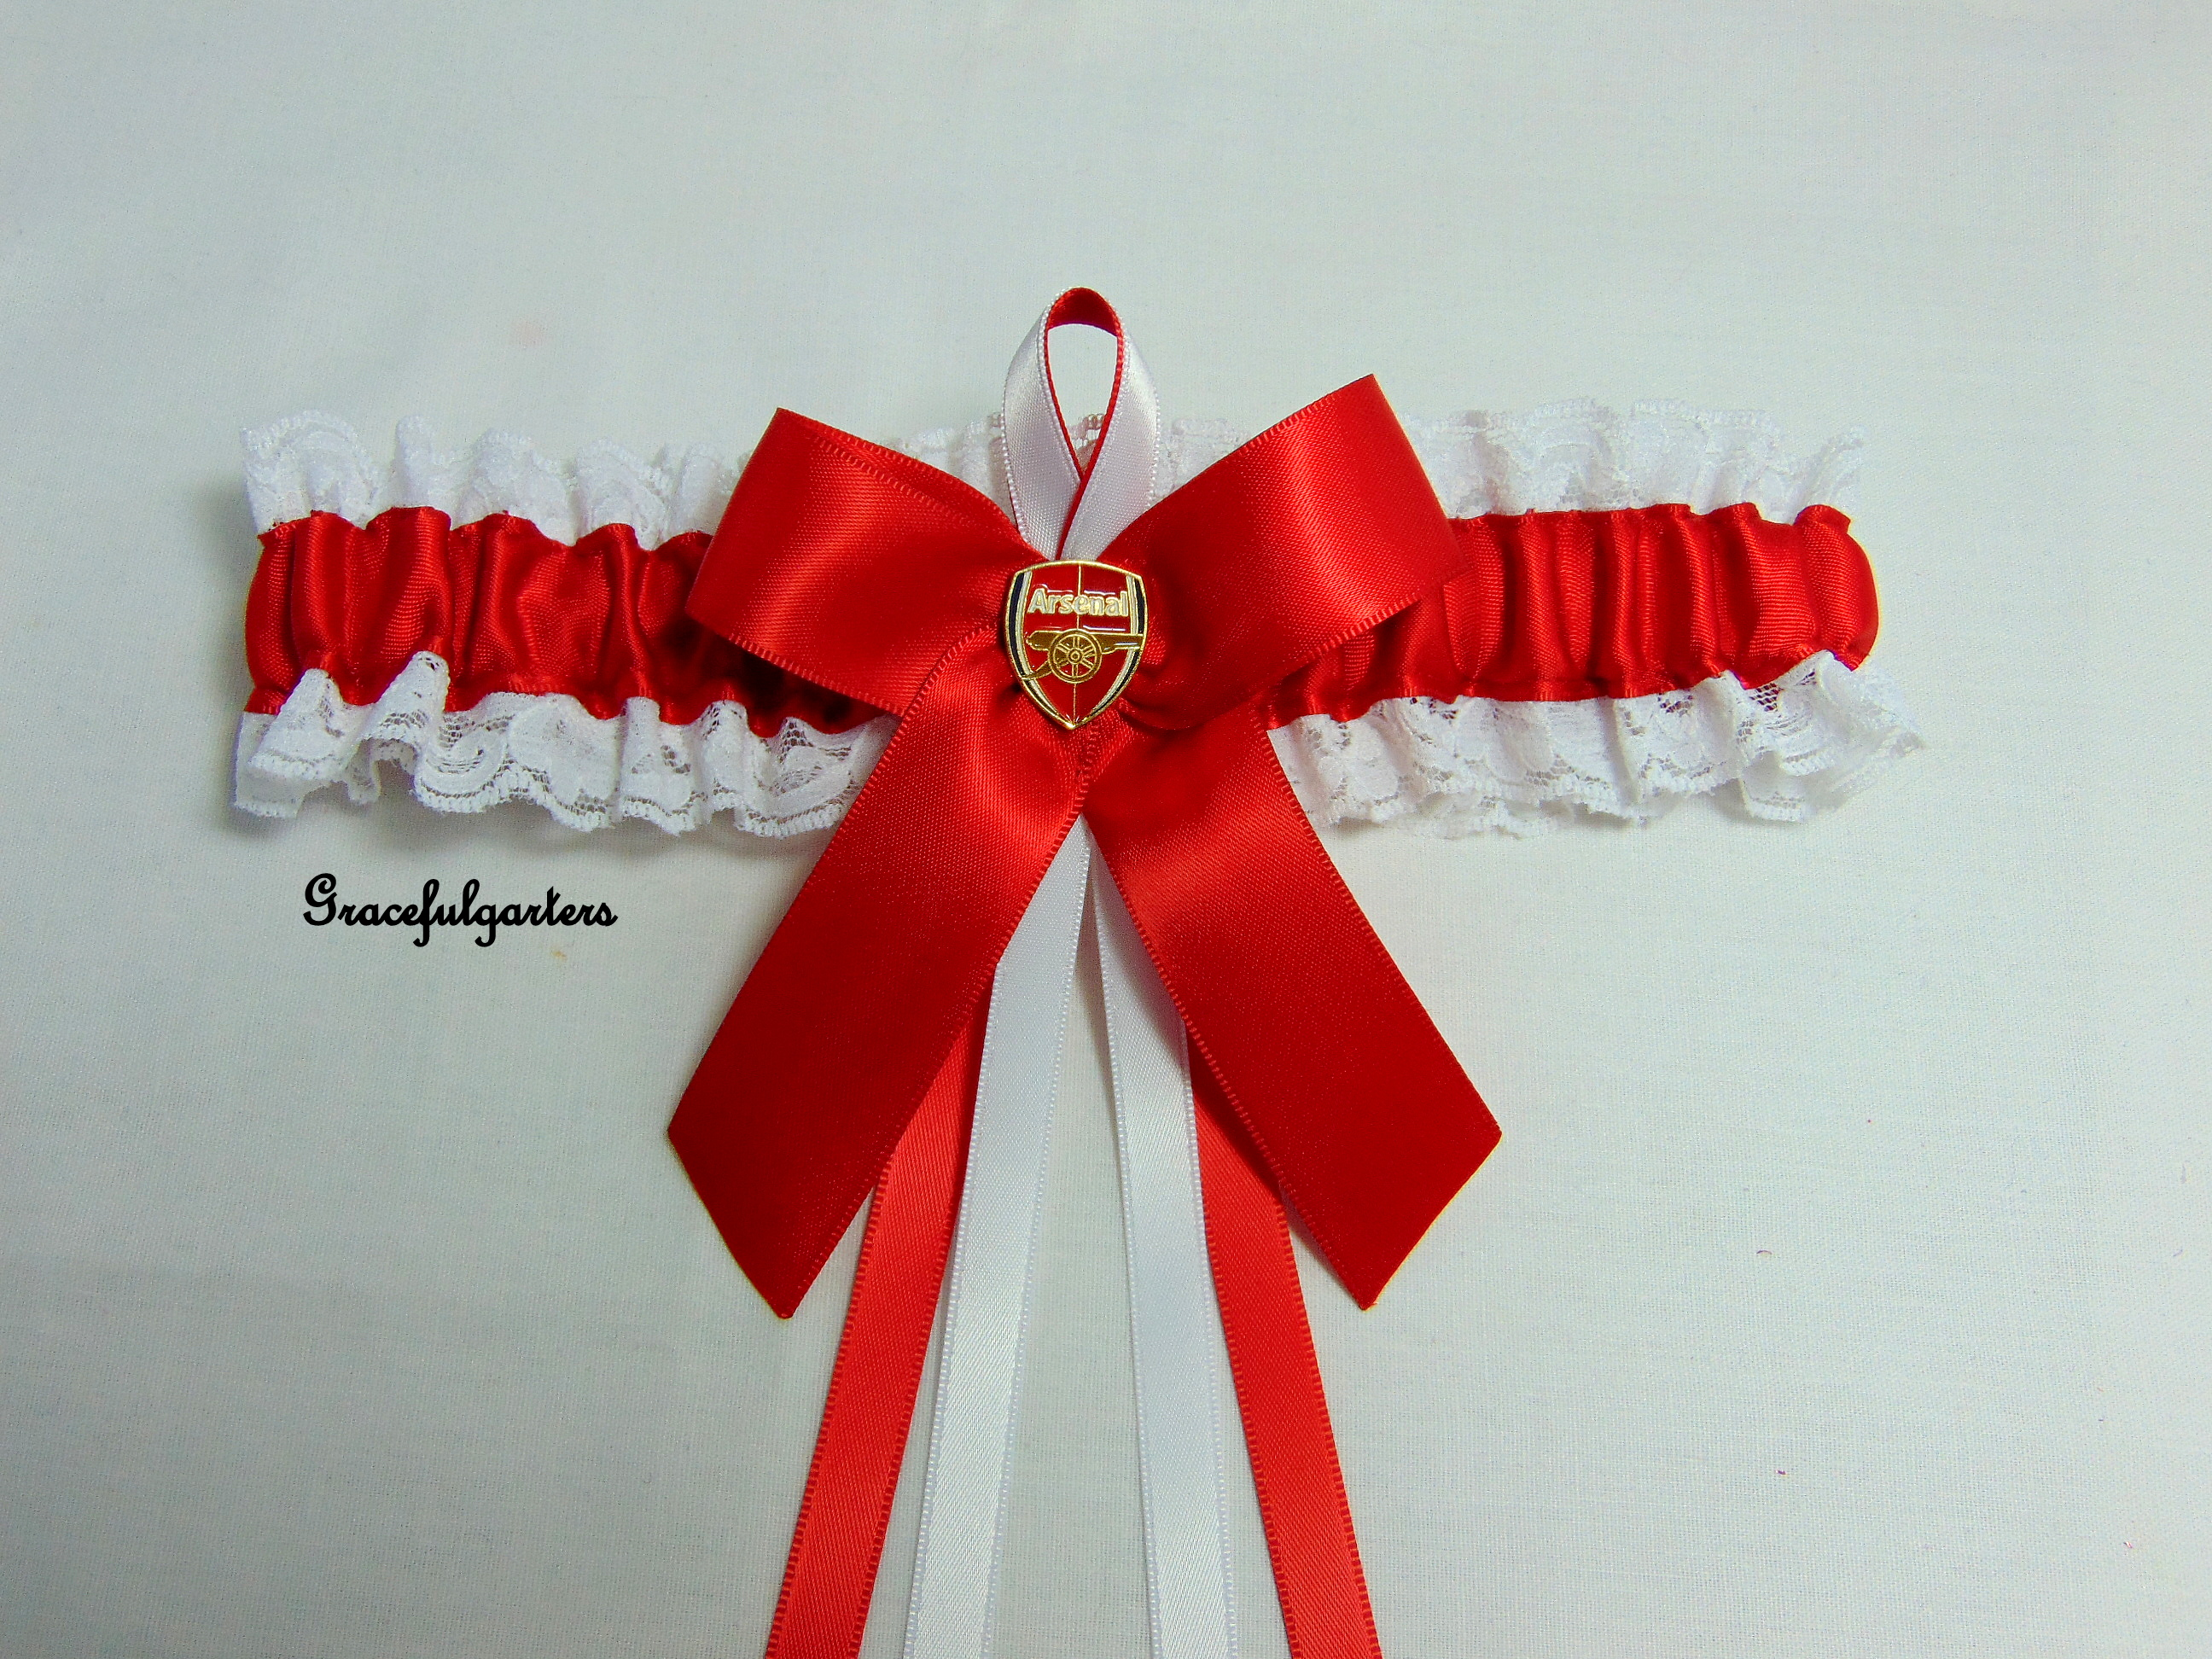 Arsenal Lace Trimmed Football Team Bridal Wedding Garter